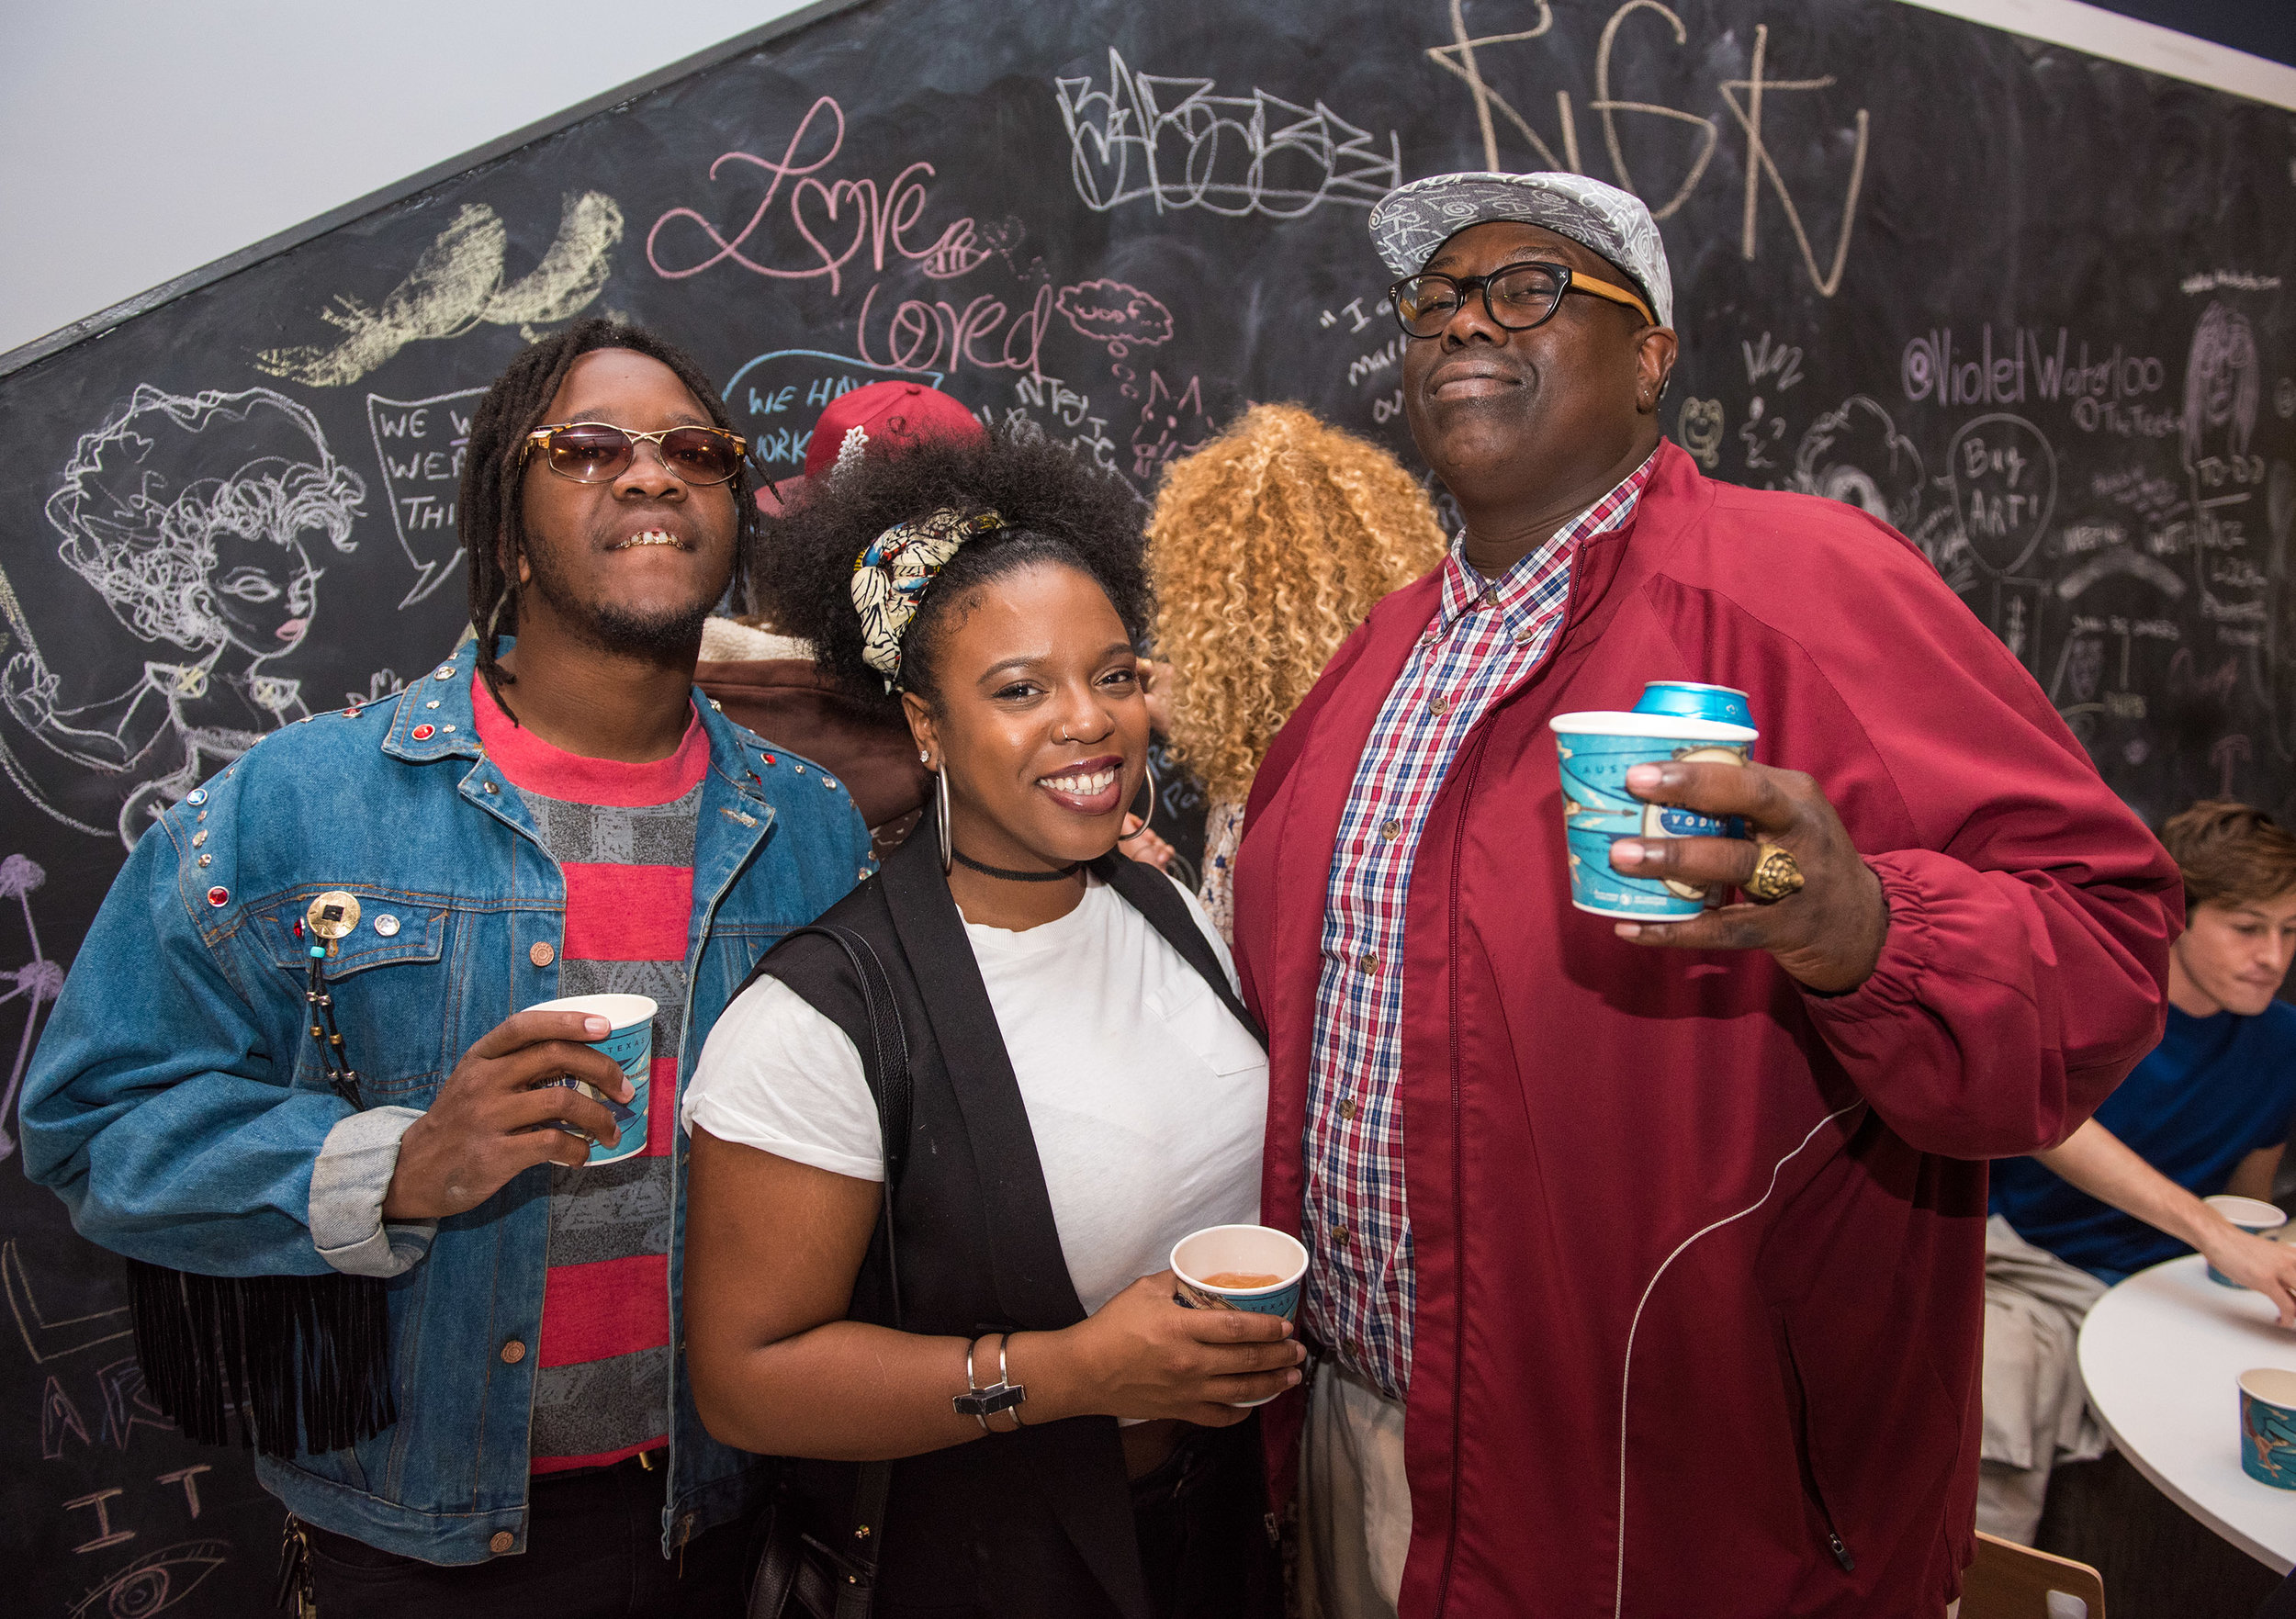 dbh-EASTopeningparty_EastSideCollective-111116-24.jpg